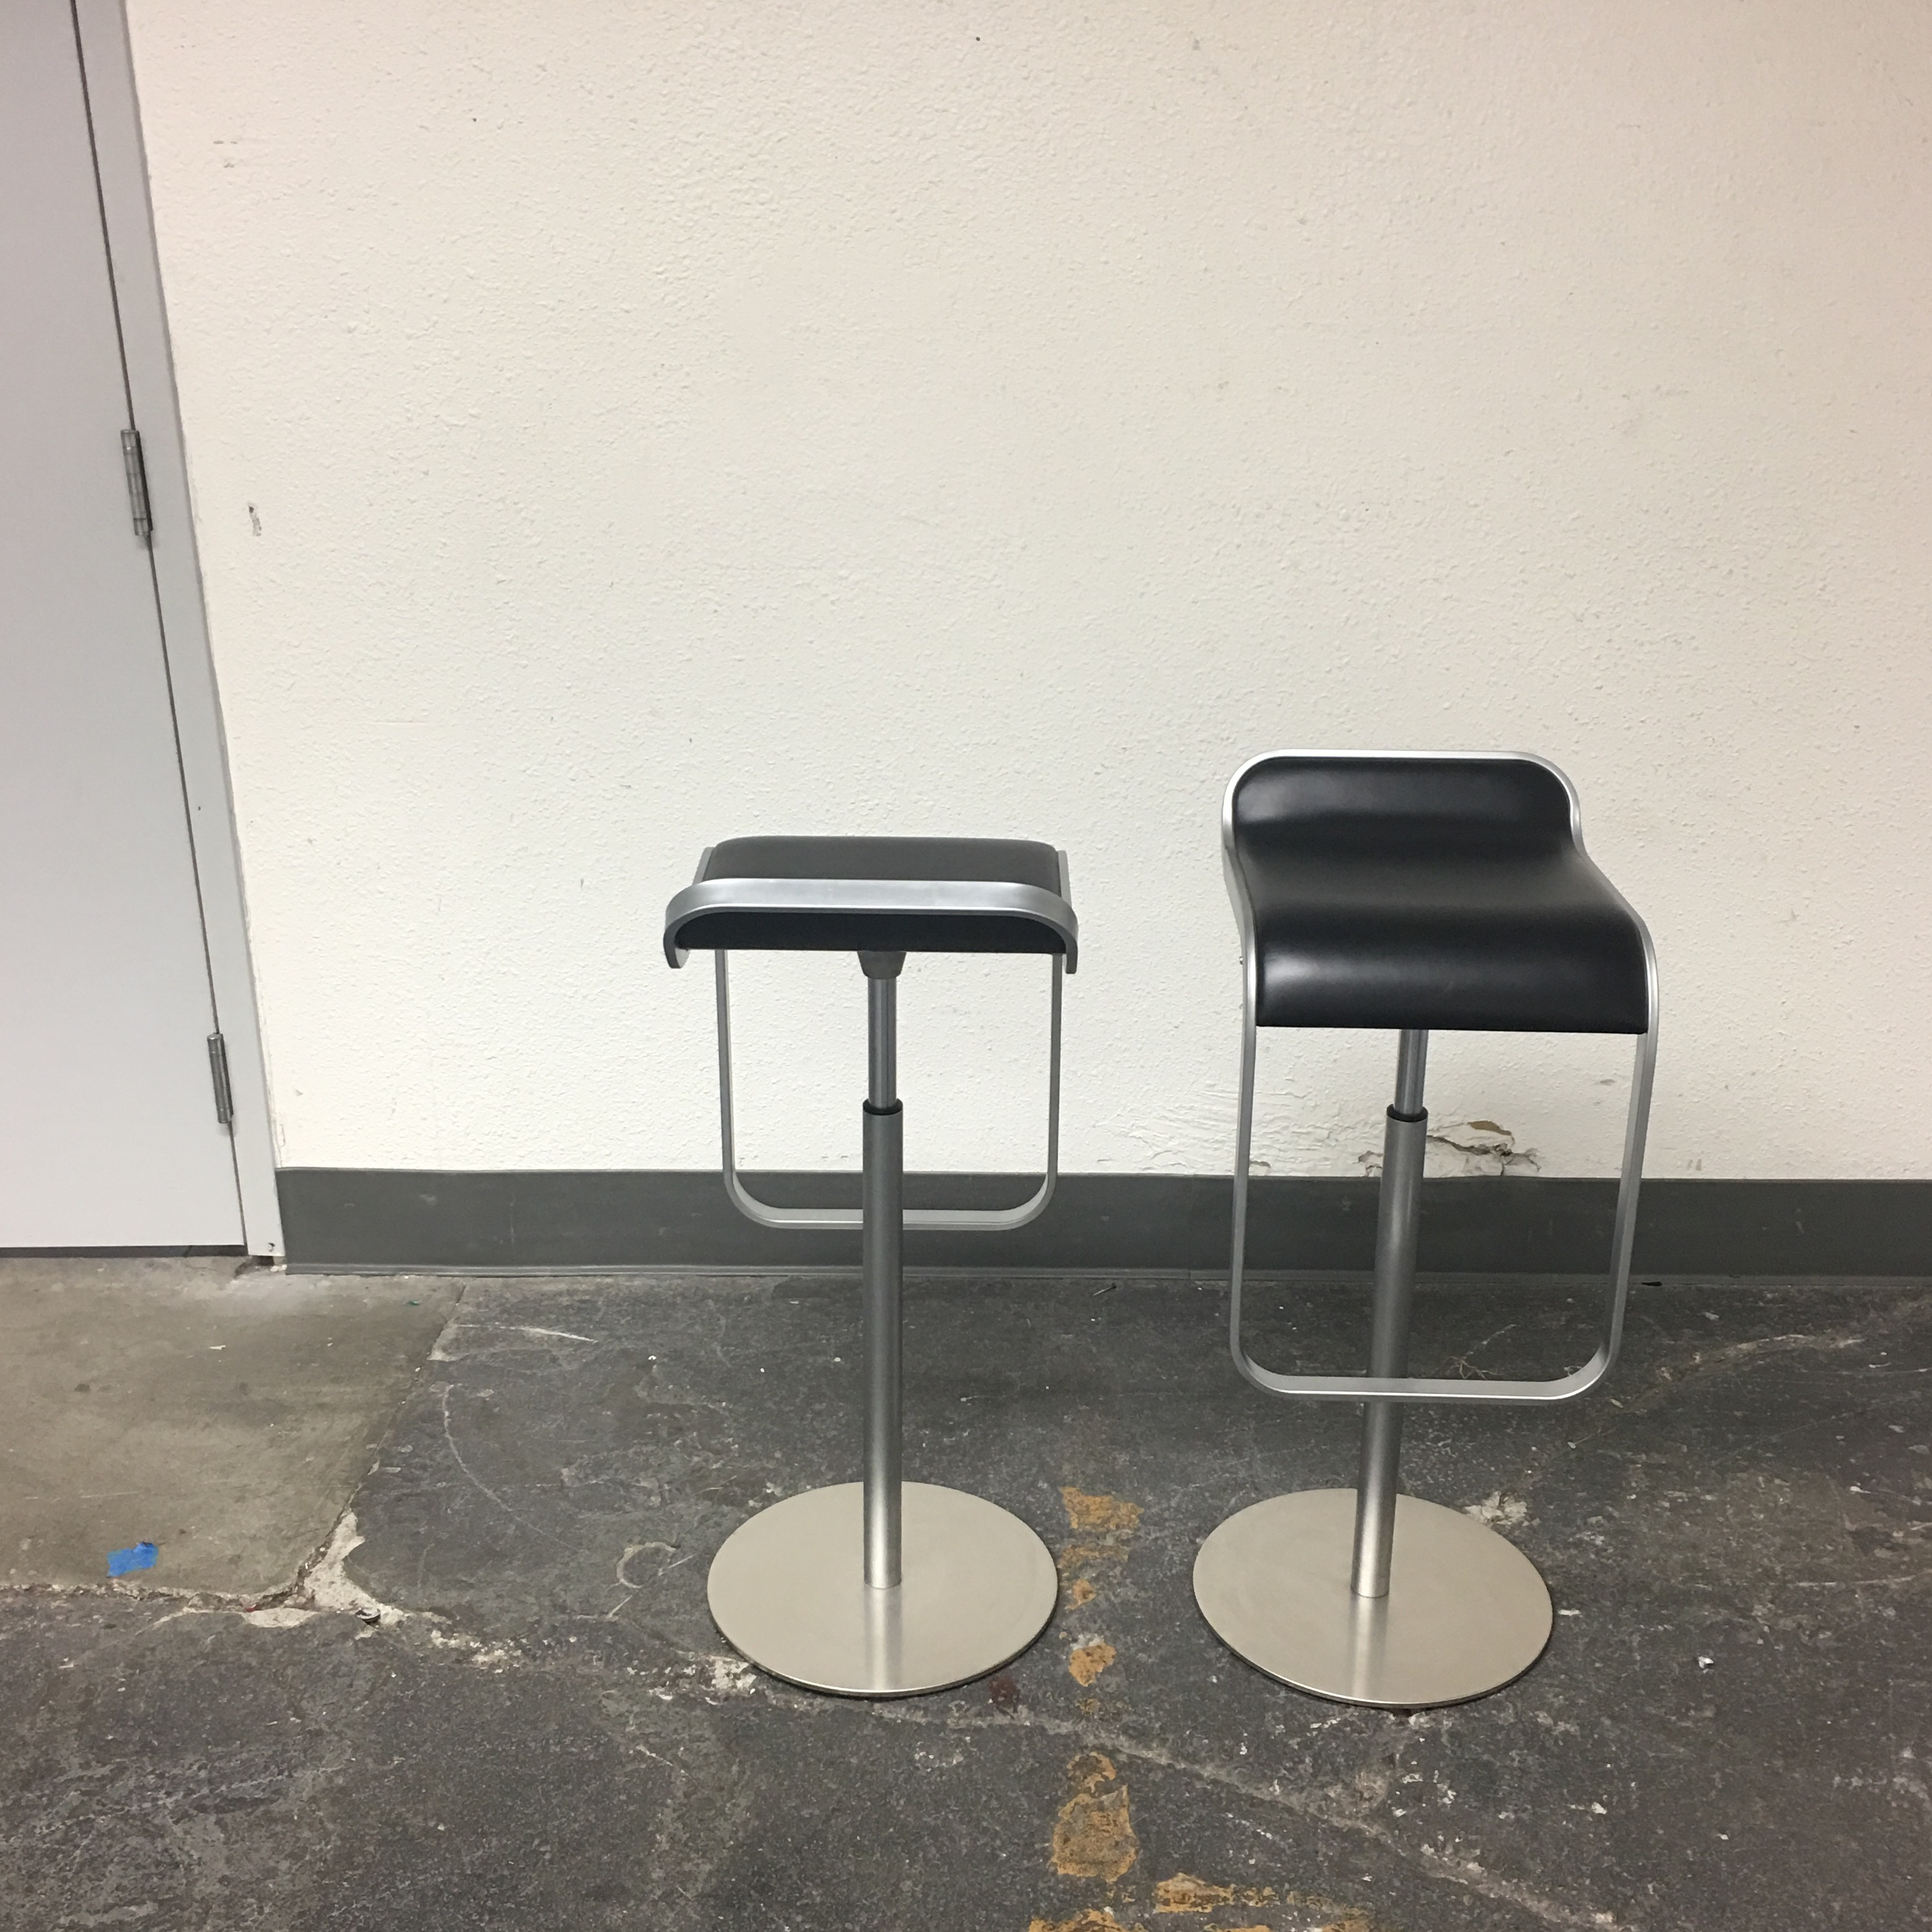 Exceptional DWR Lem Piston Stools With Black Leather Seats   A Pair   Image 6 Of 8 Awesome Ideas